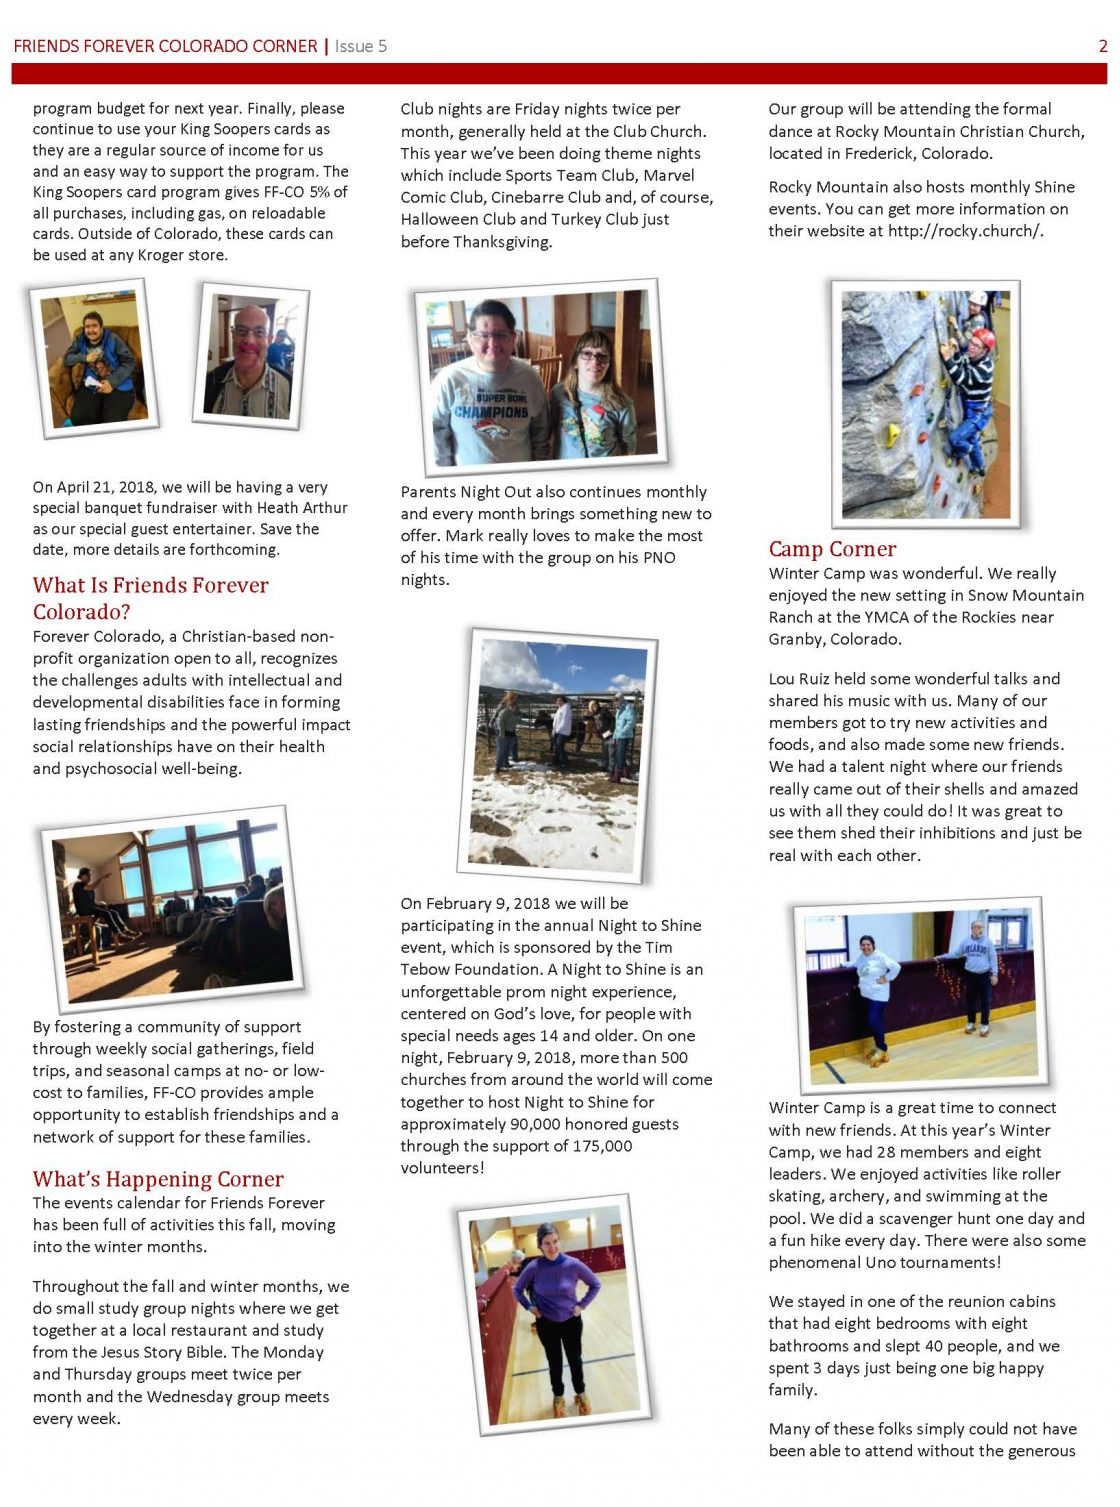 Newsletter Issue 5 - page 2